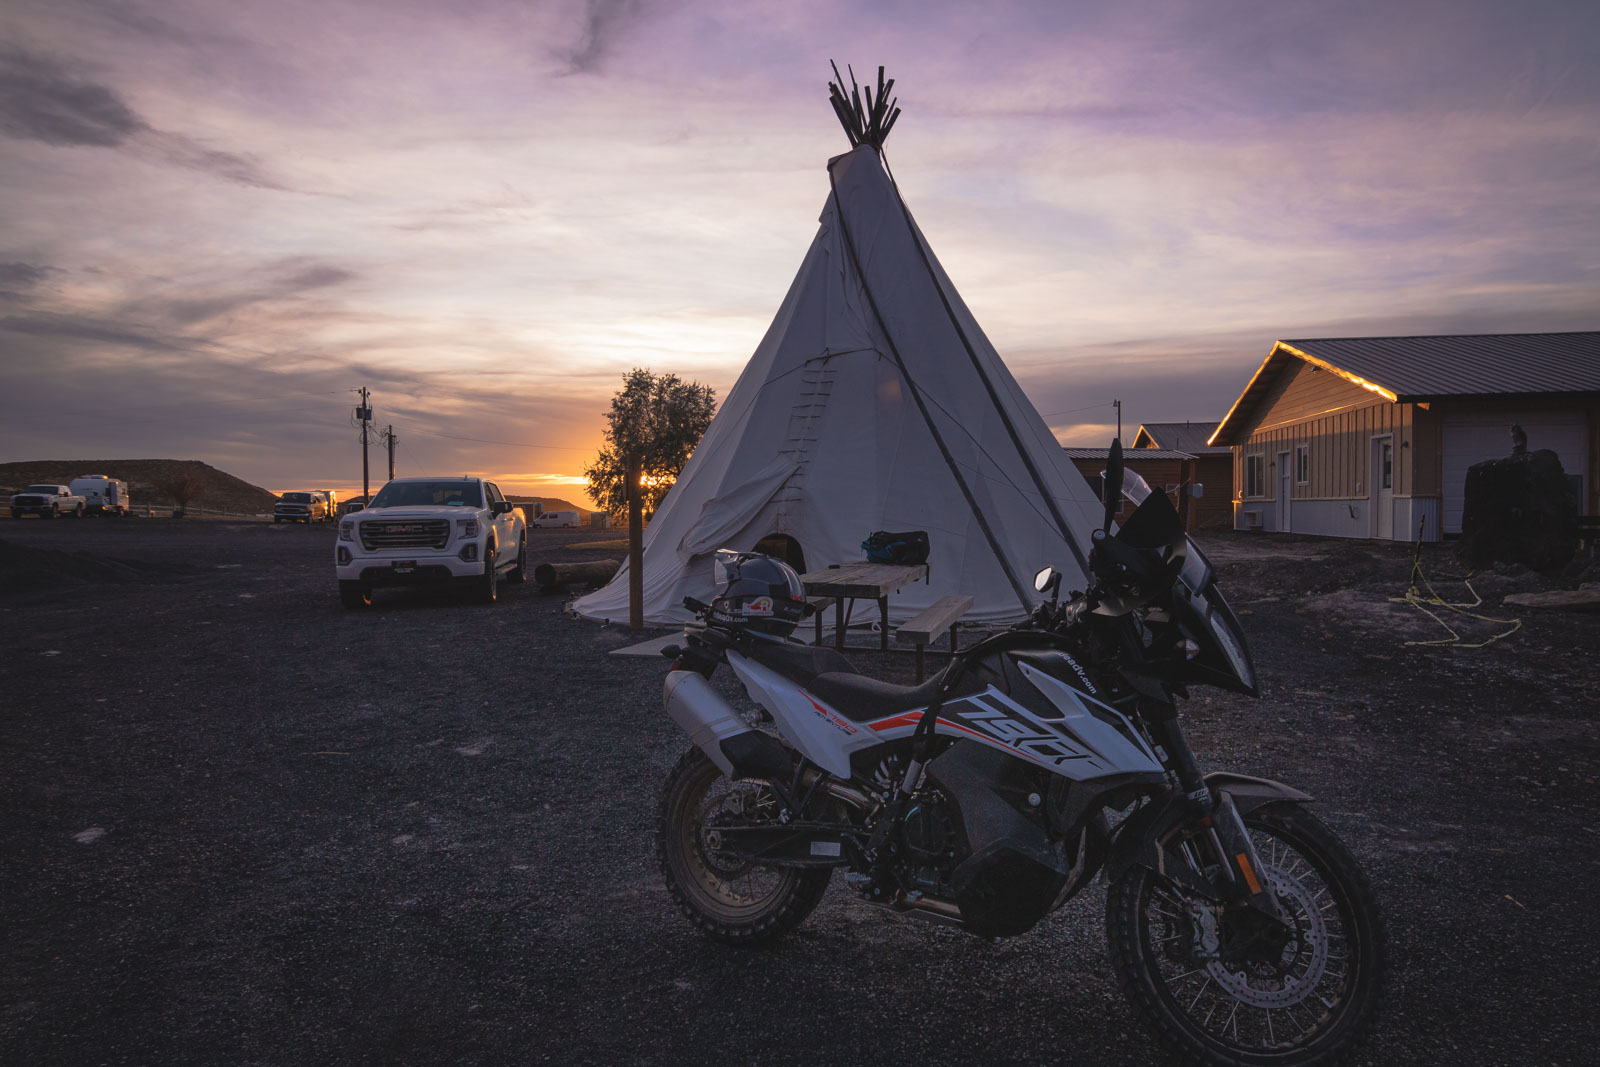 adventure_motorcycle_tour_crane_hotsprings_tipi